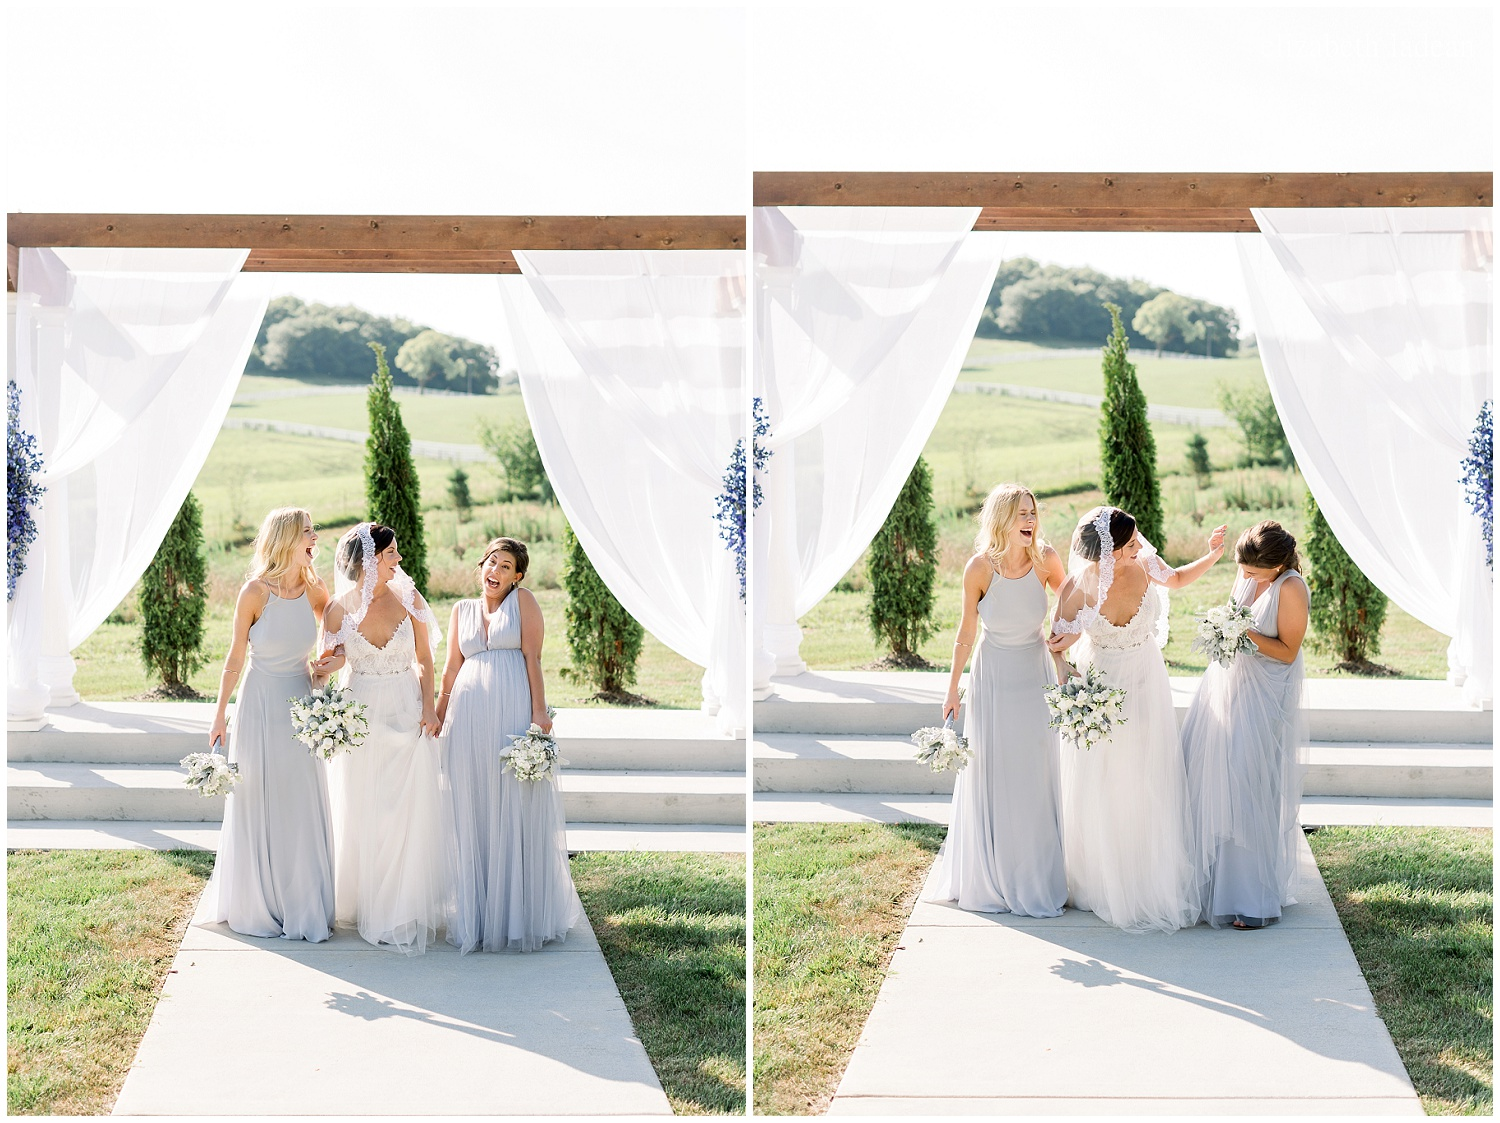 -behind-the-scenes-of-a-wedding-photographer-2018-elizabeth-ladean-photography-photo_3483.jpg